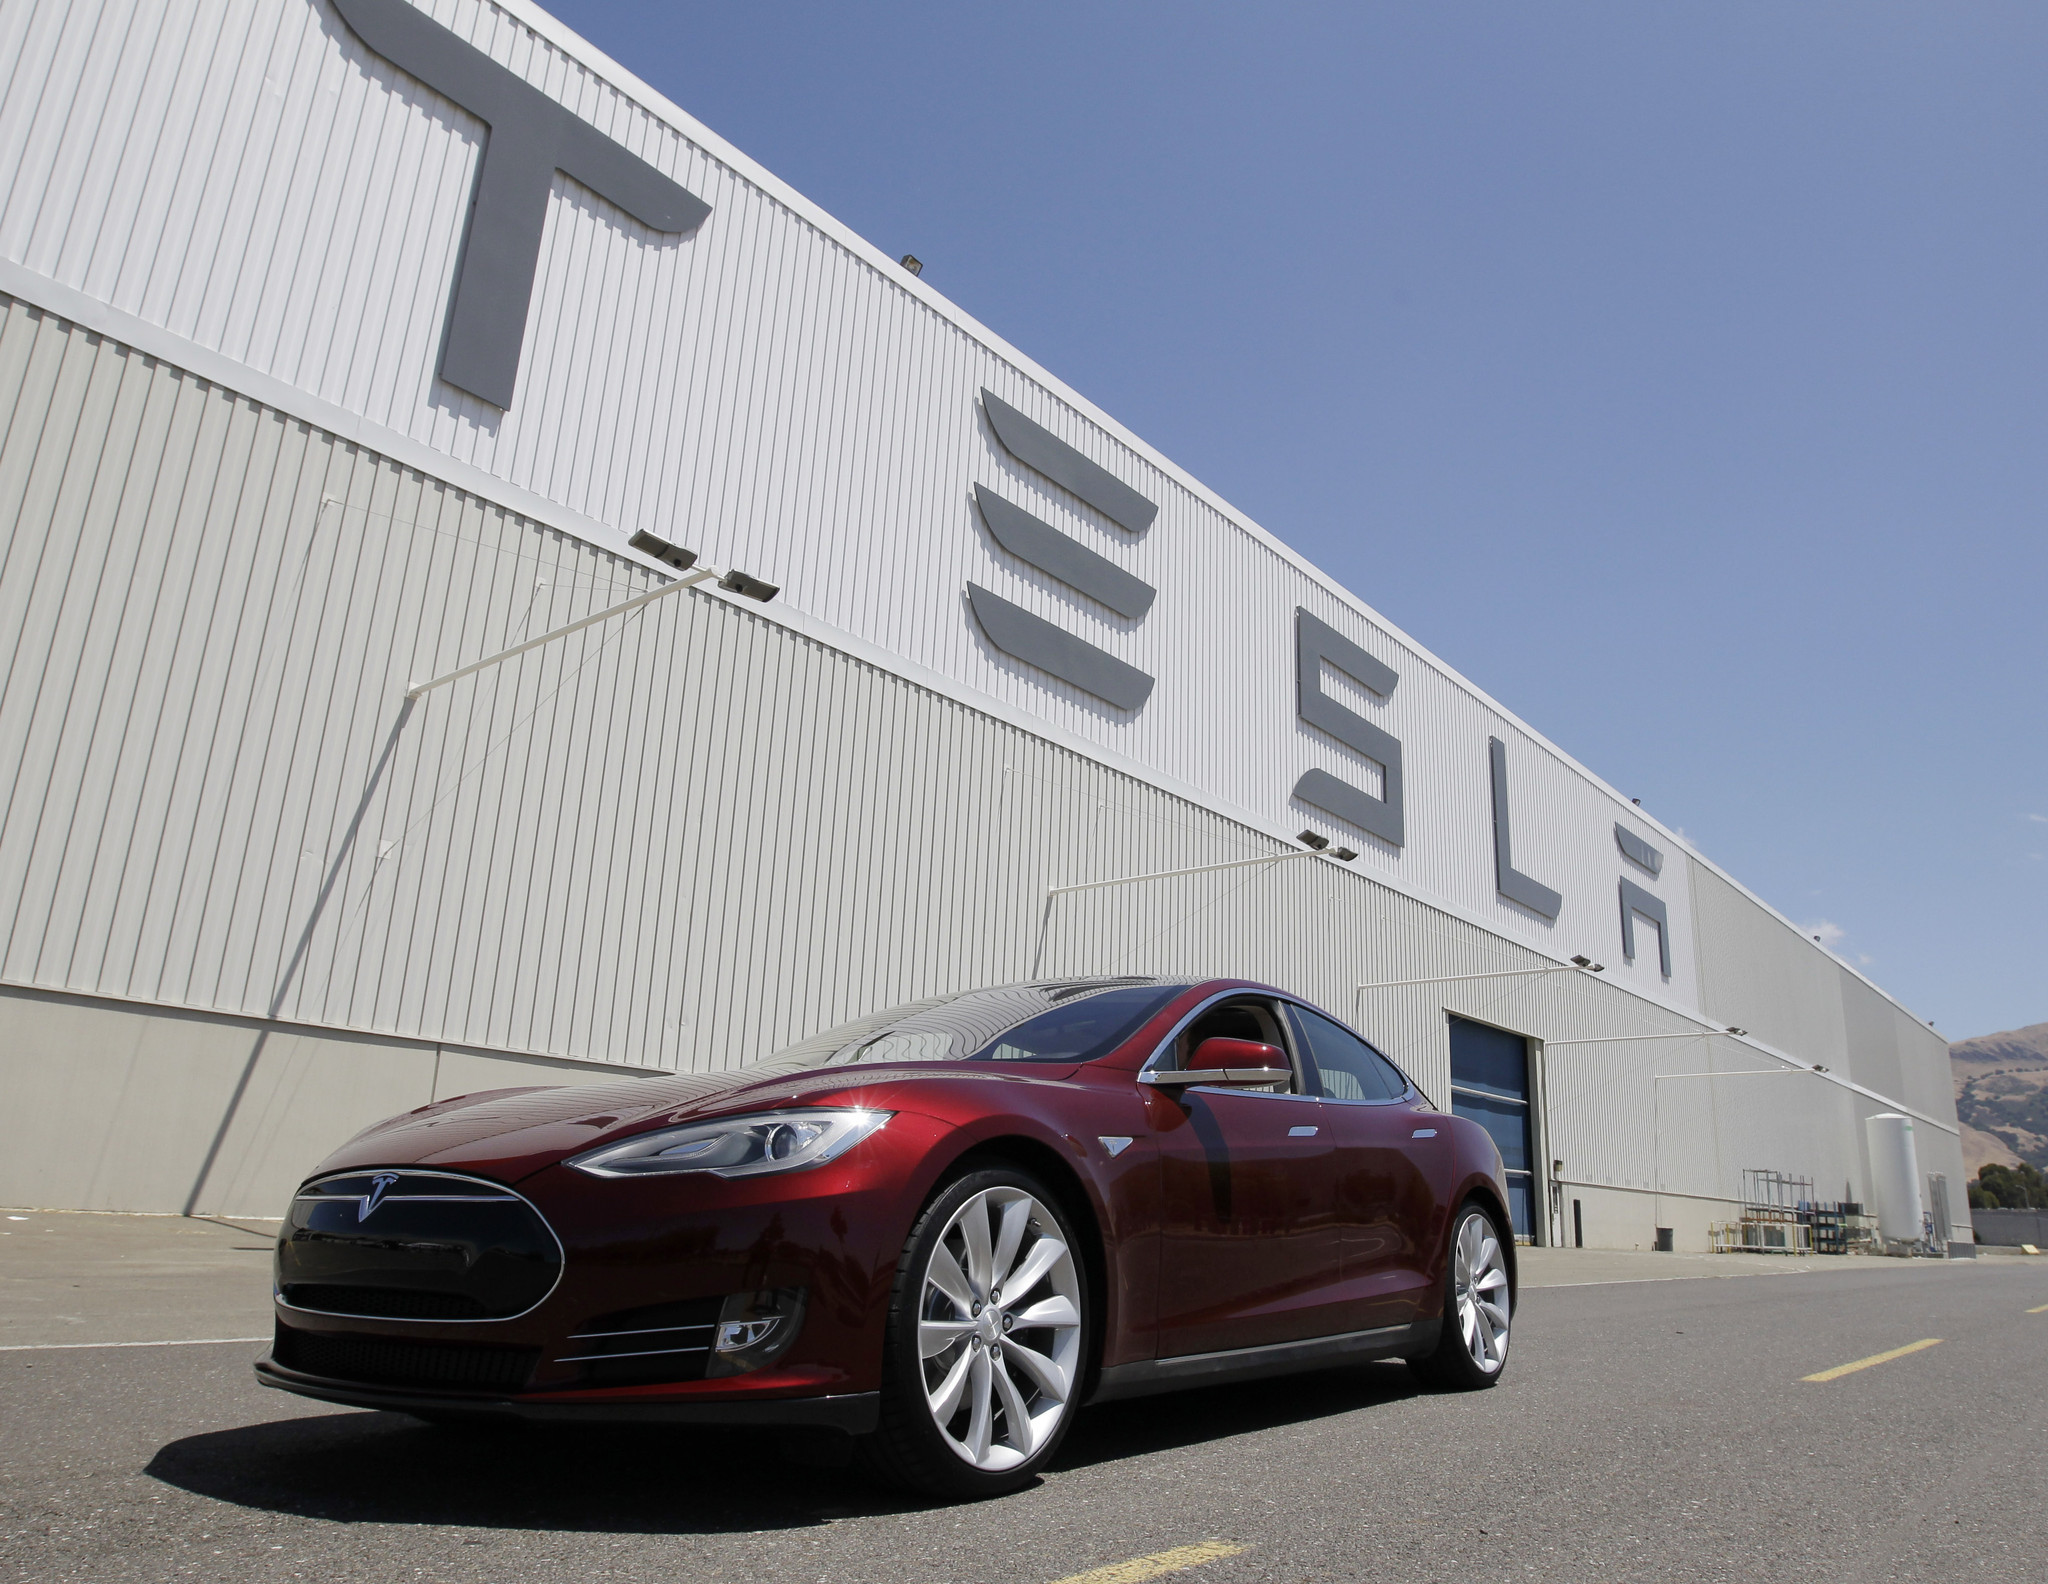 Tesla Motors has confirmed it will join a Nevada news conference at which Gov. Brian Sandoval will announce the electric car company will build its